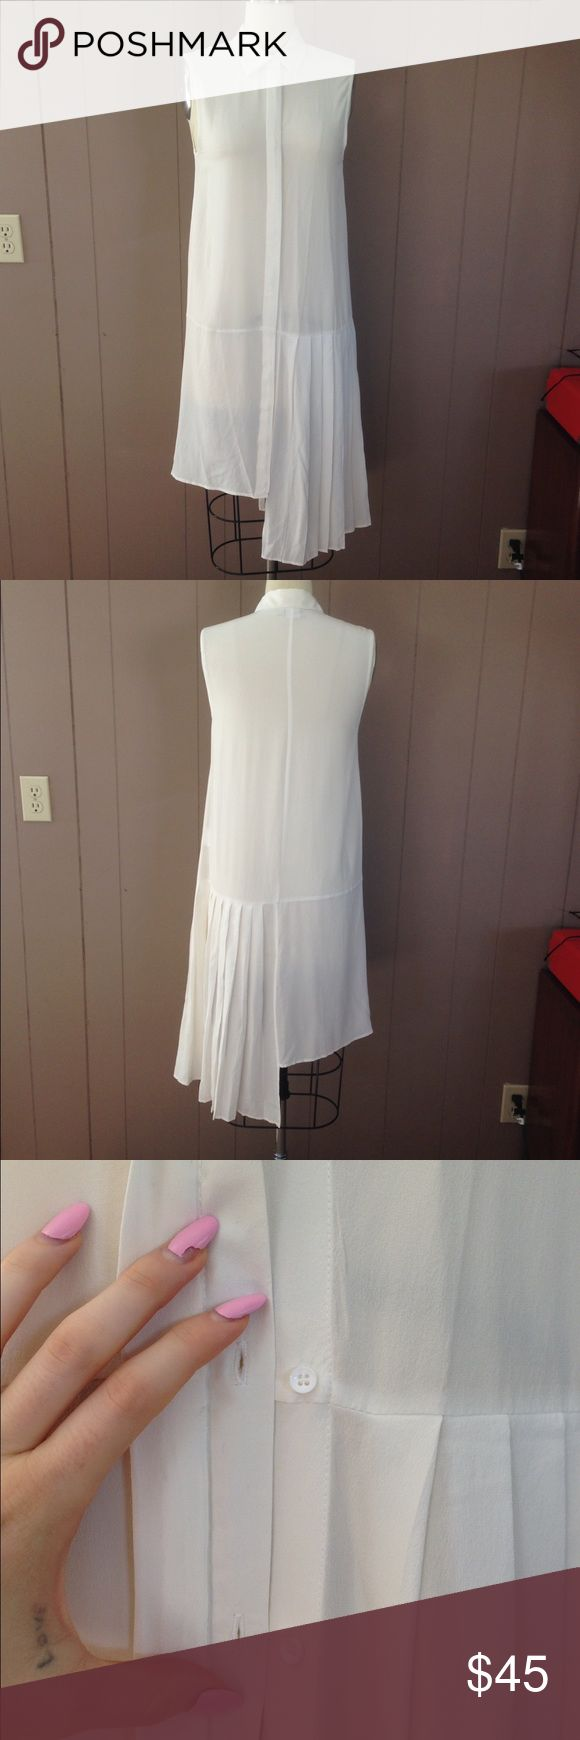 OAK NYC sheer chiffon button down dress NWOT never worn OAK NYC asymmetrical button down dress. Could be worn with leggings or as a layering piece! Two small marks on back are the only defects. Feel free to ask questions or MAKE AN OFFER! oak nyc Dresses Asymmetrical